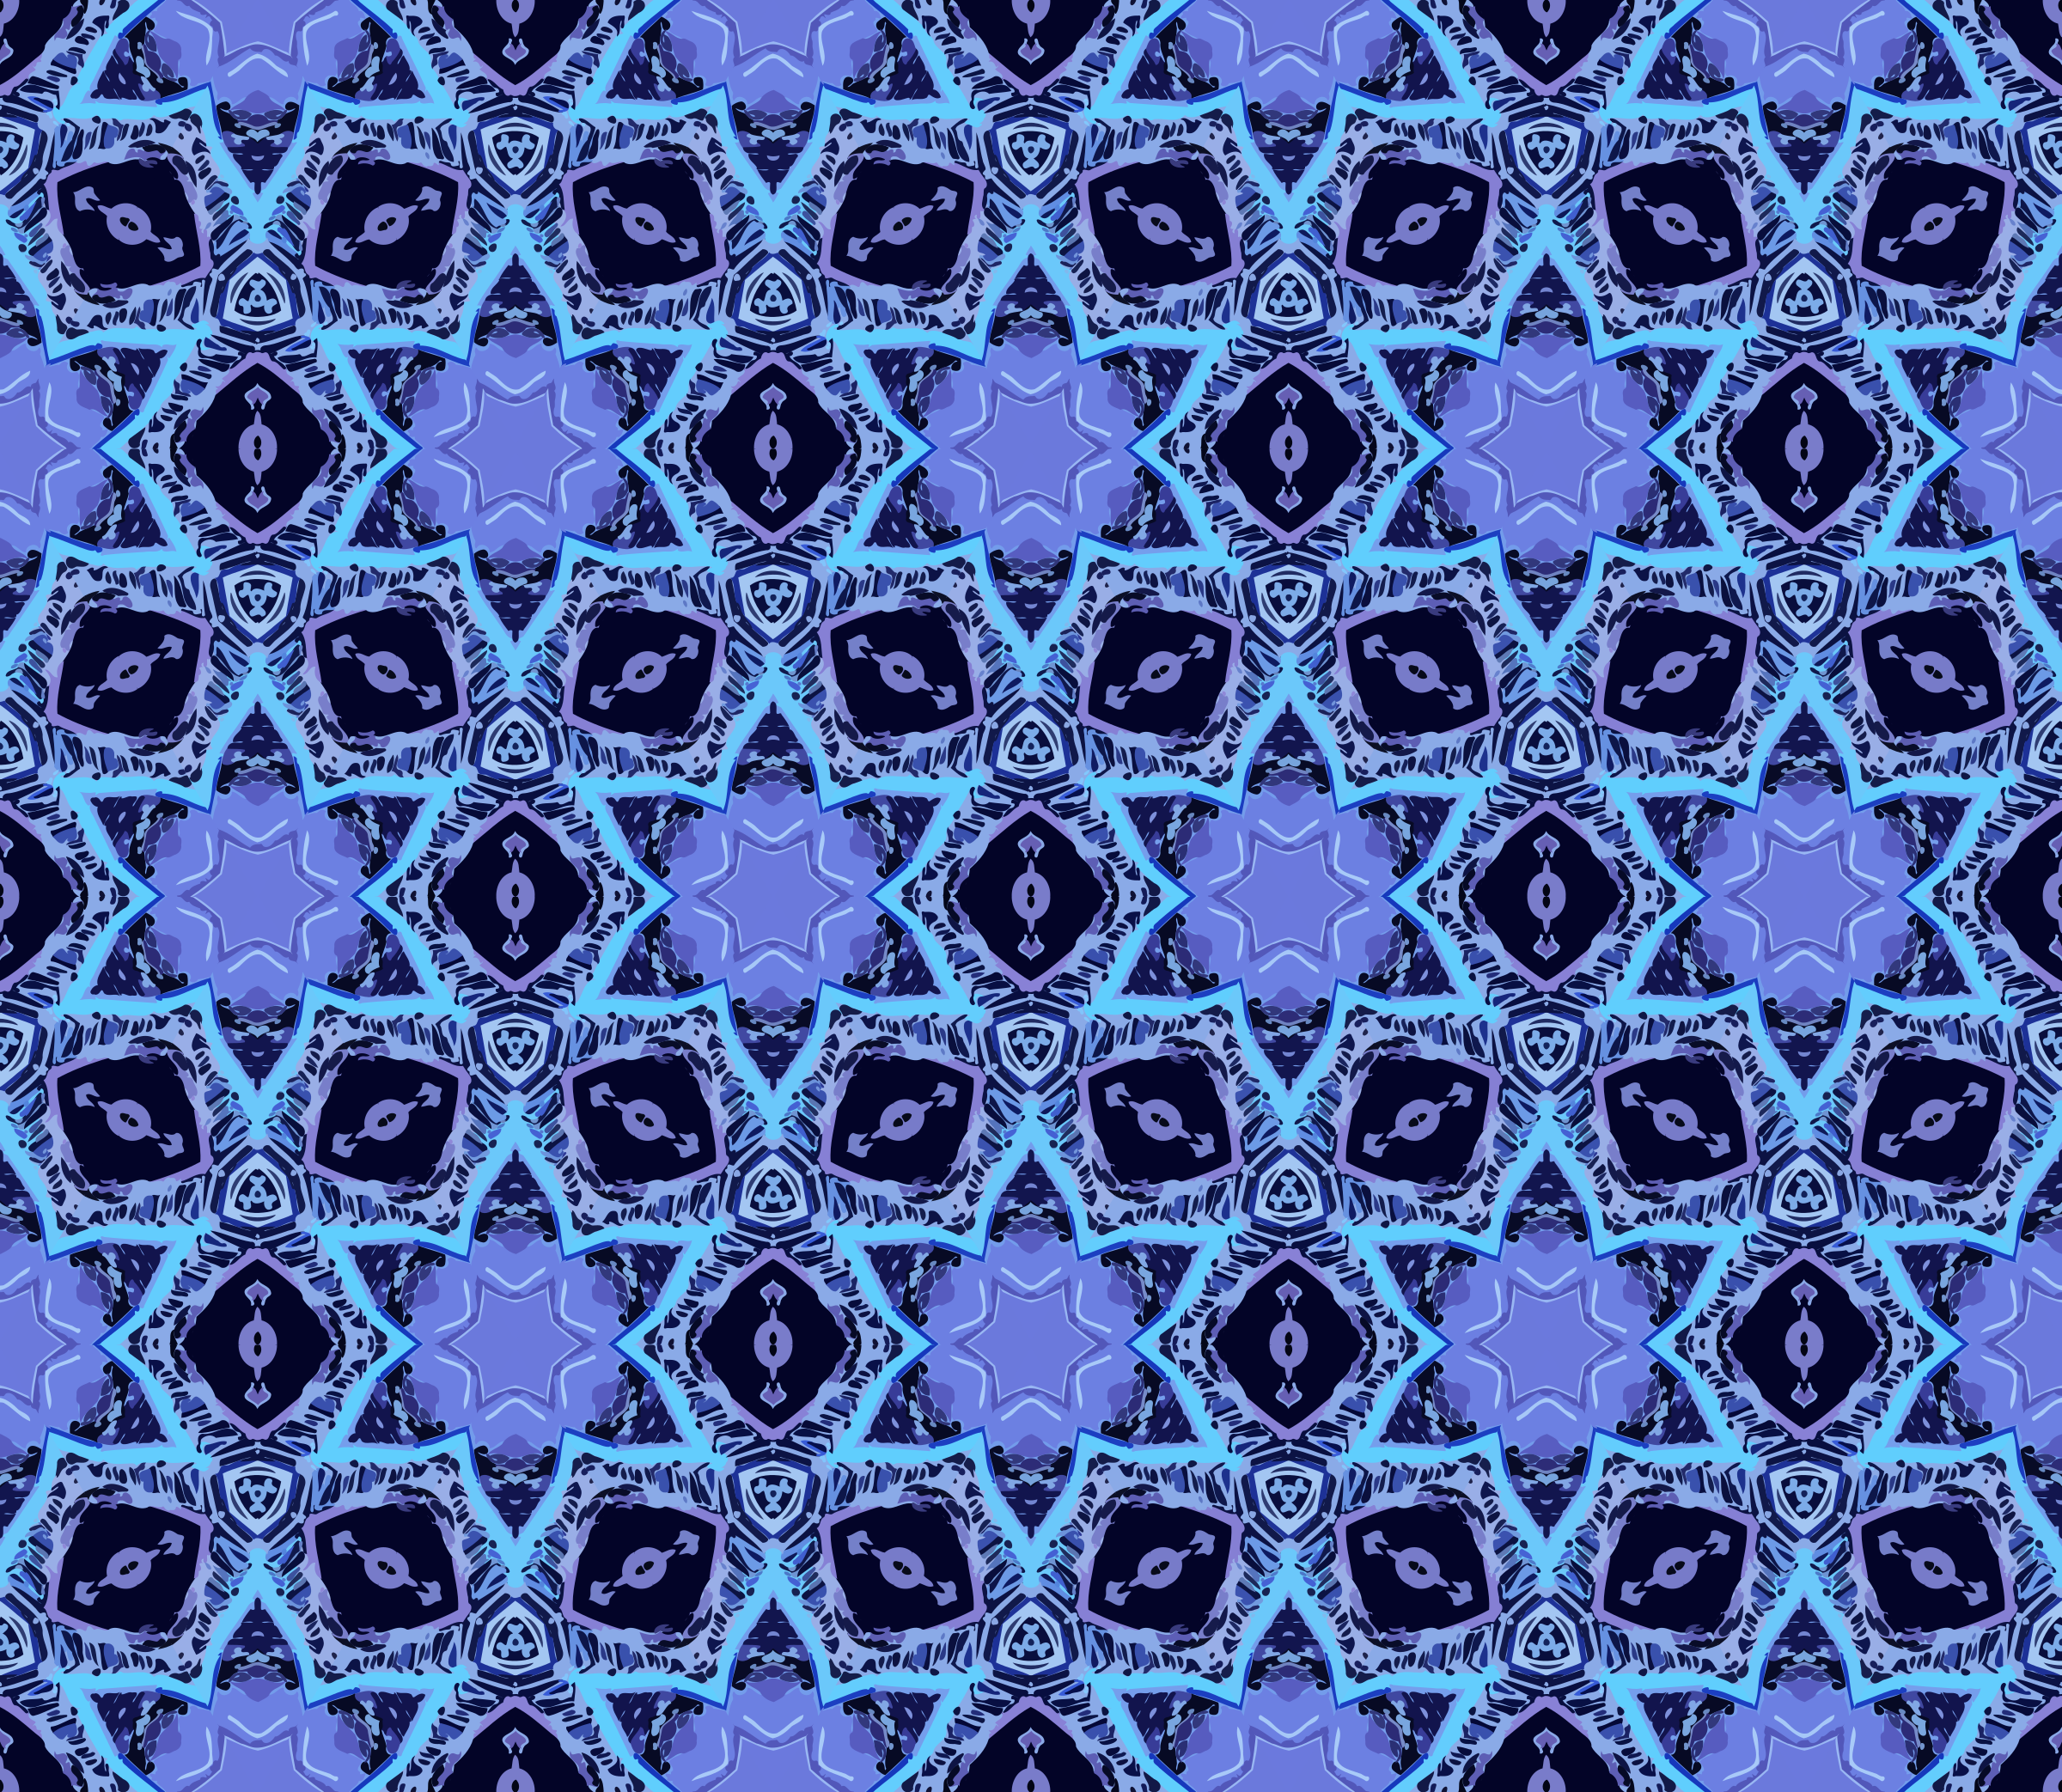 Background pattern 153 (colour 5) by Firkin